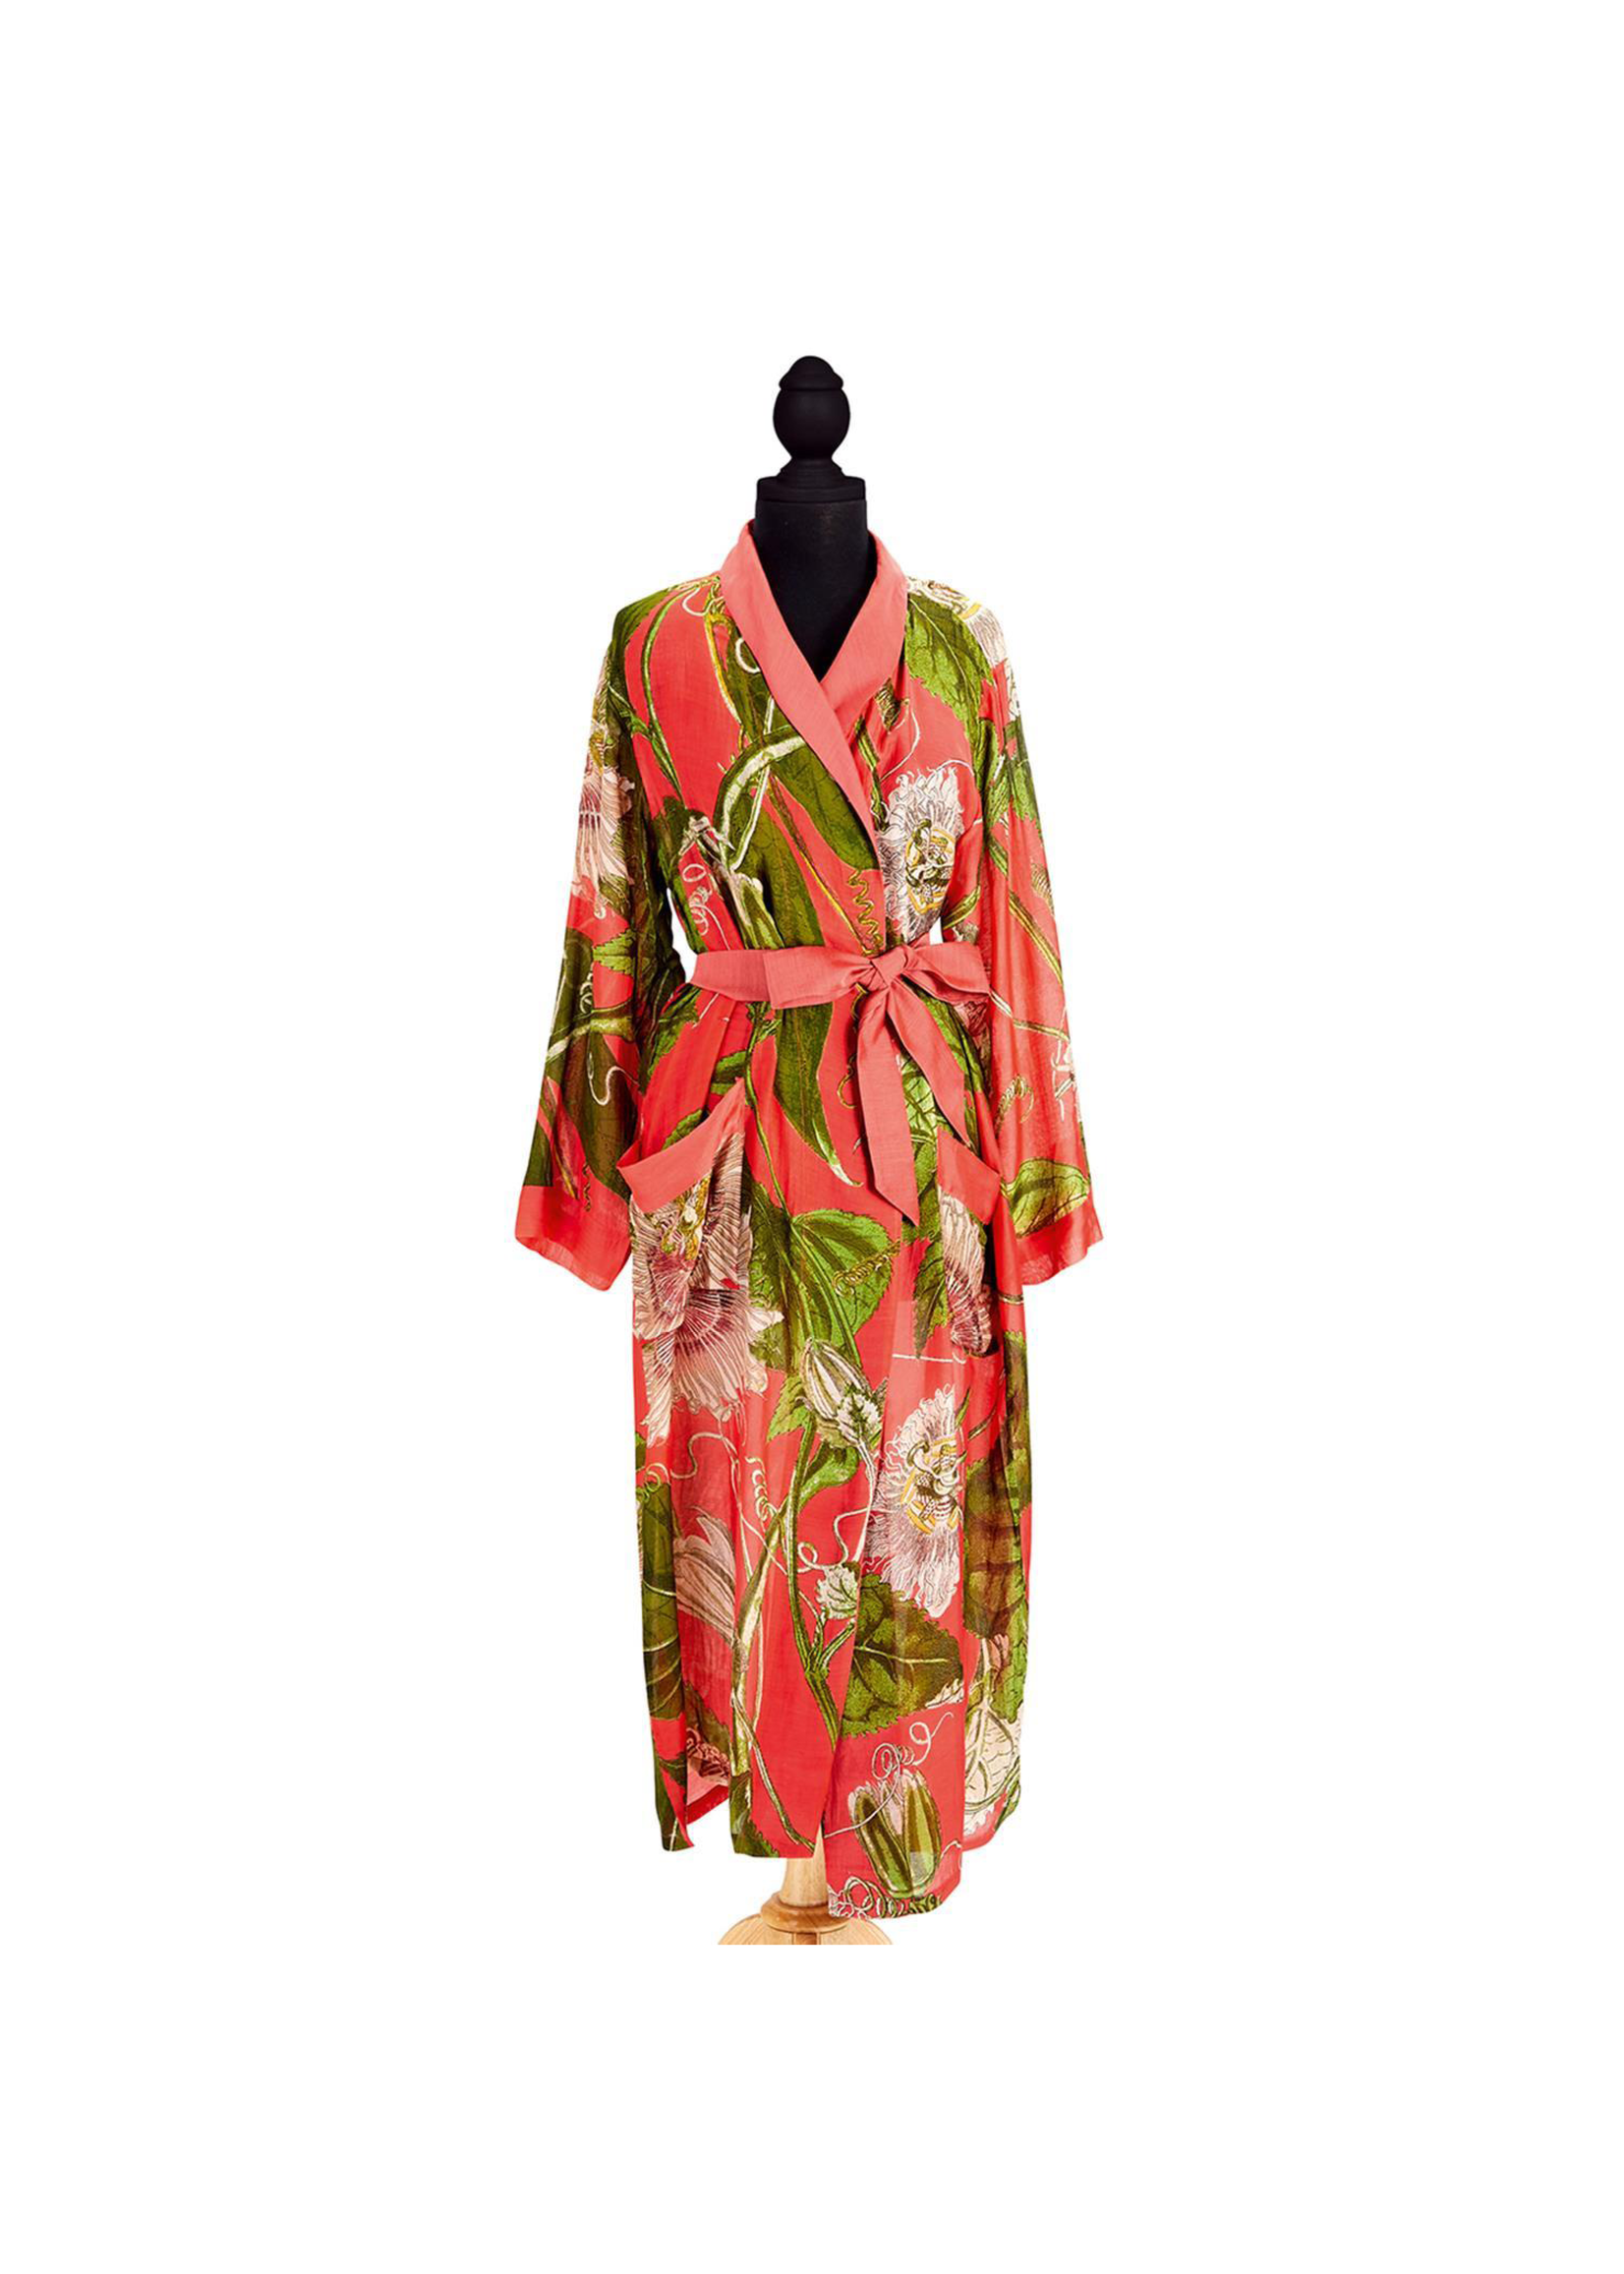 Two's Company, Inc. Coral Passion Flower Robe Gown